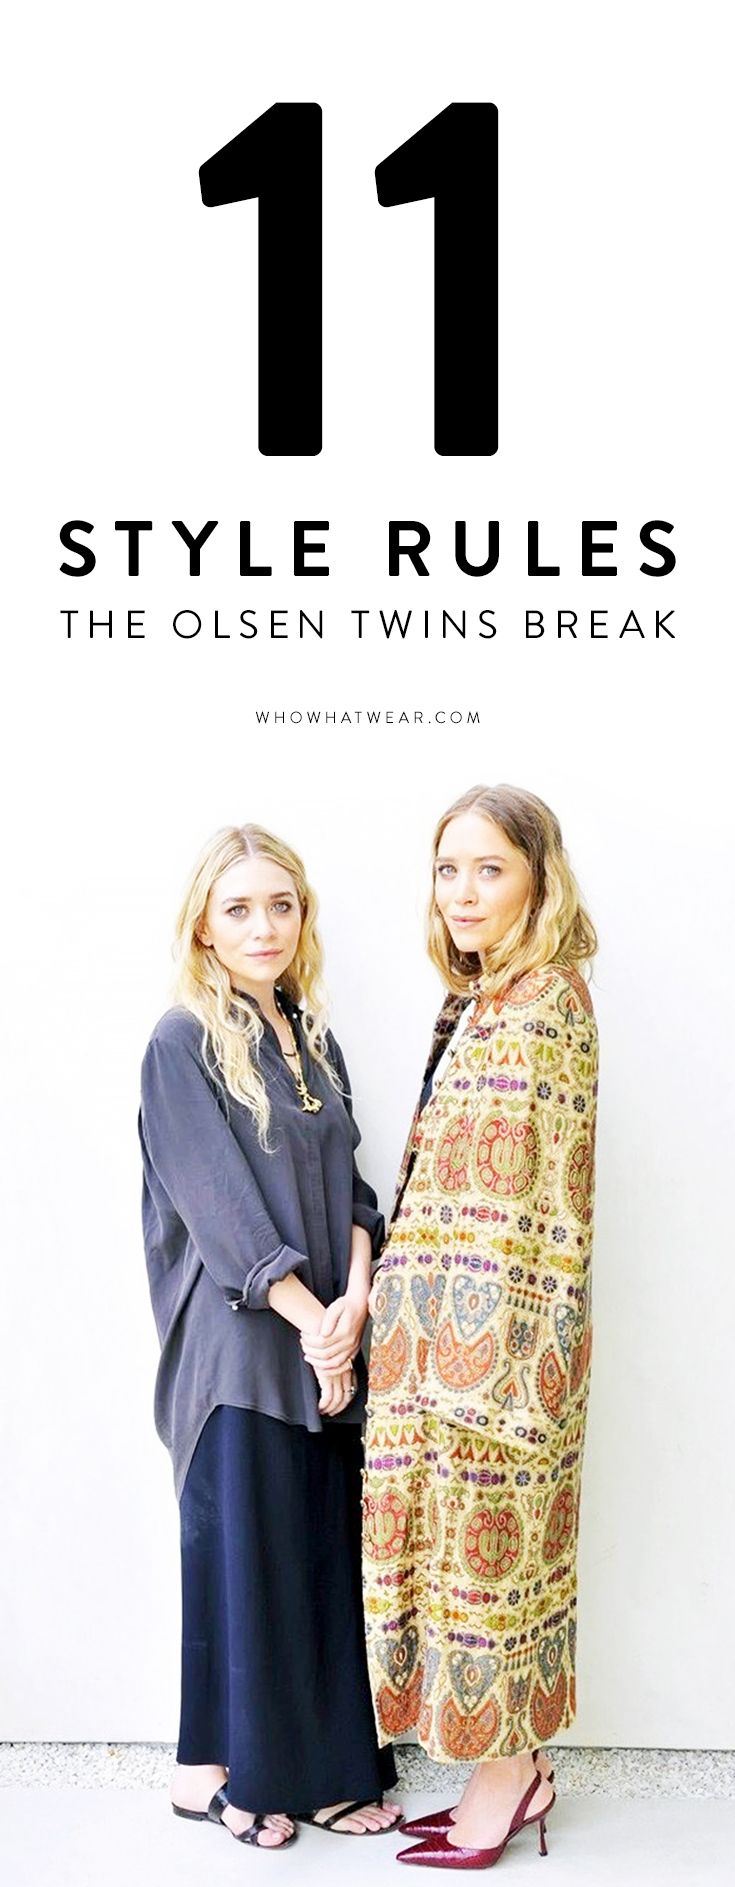 11 style rules you should break, according to Mary-Kate and Ashley Olsen